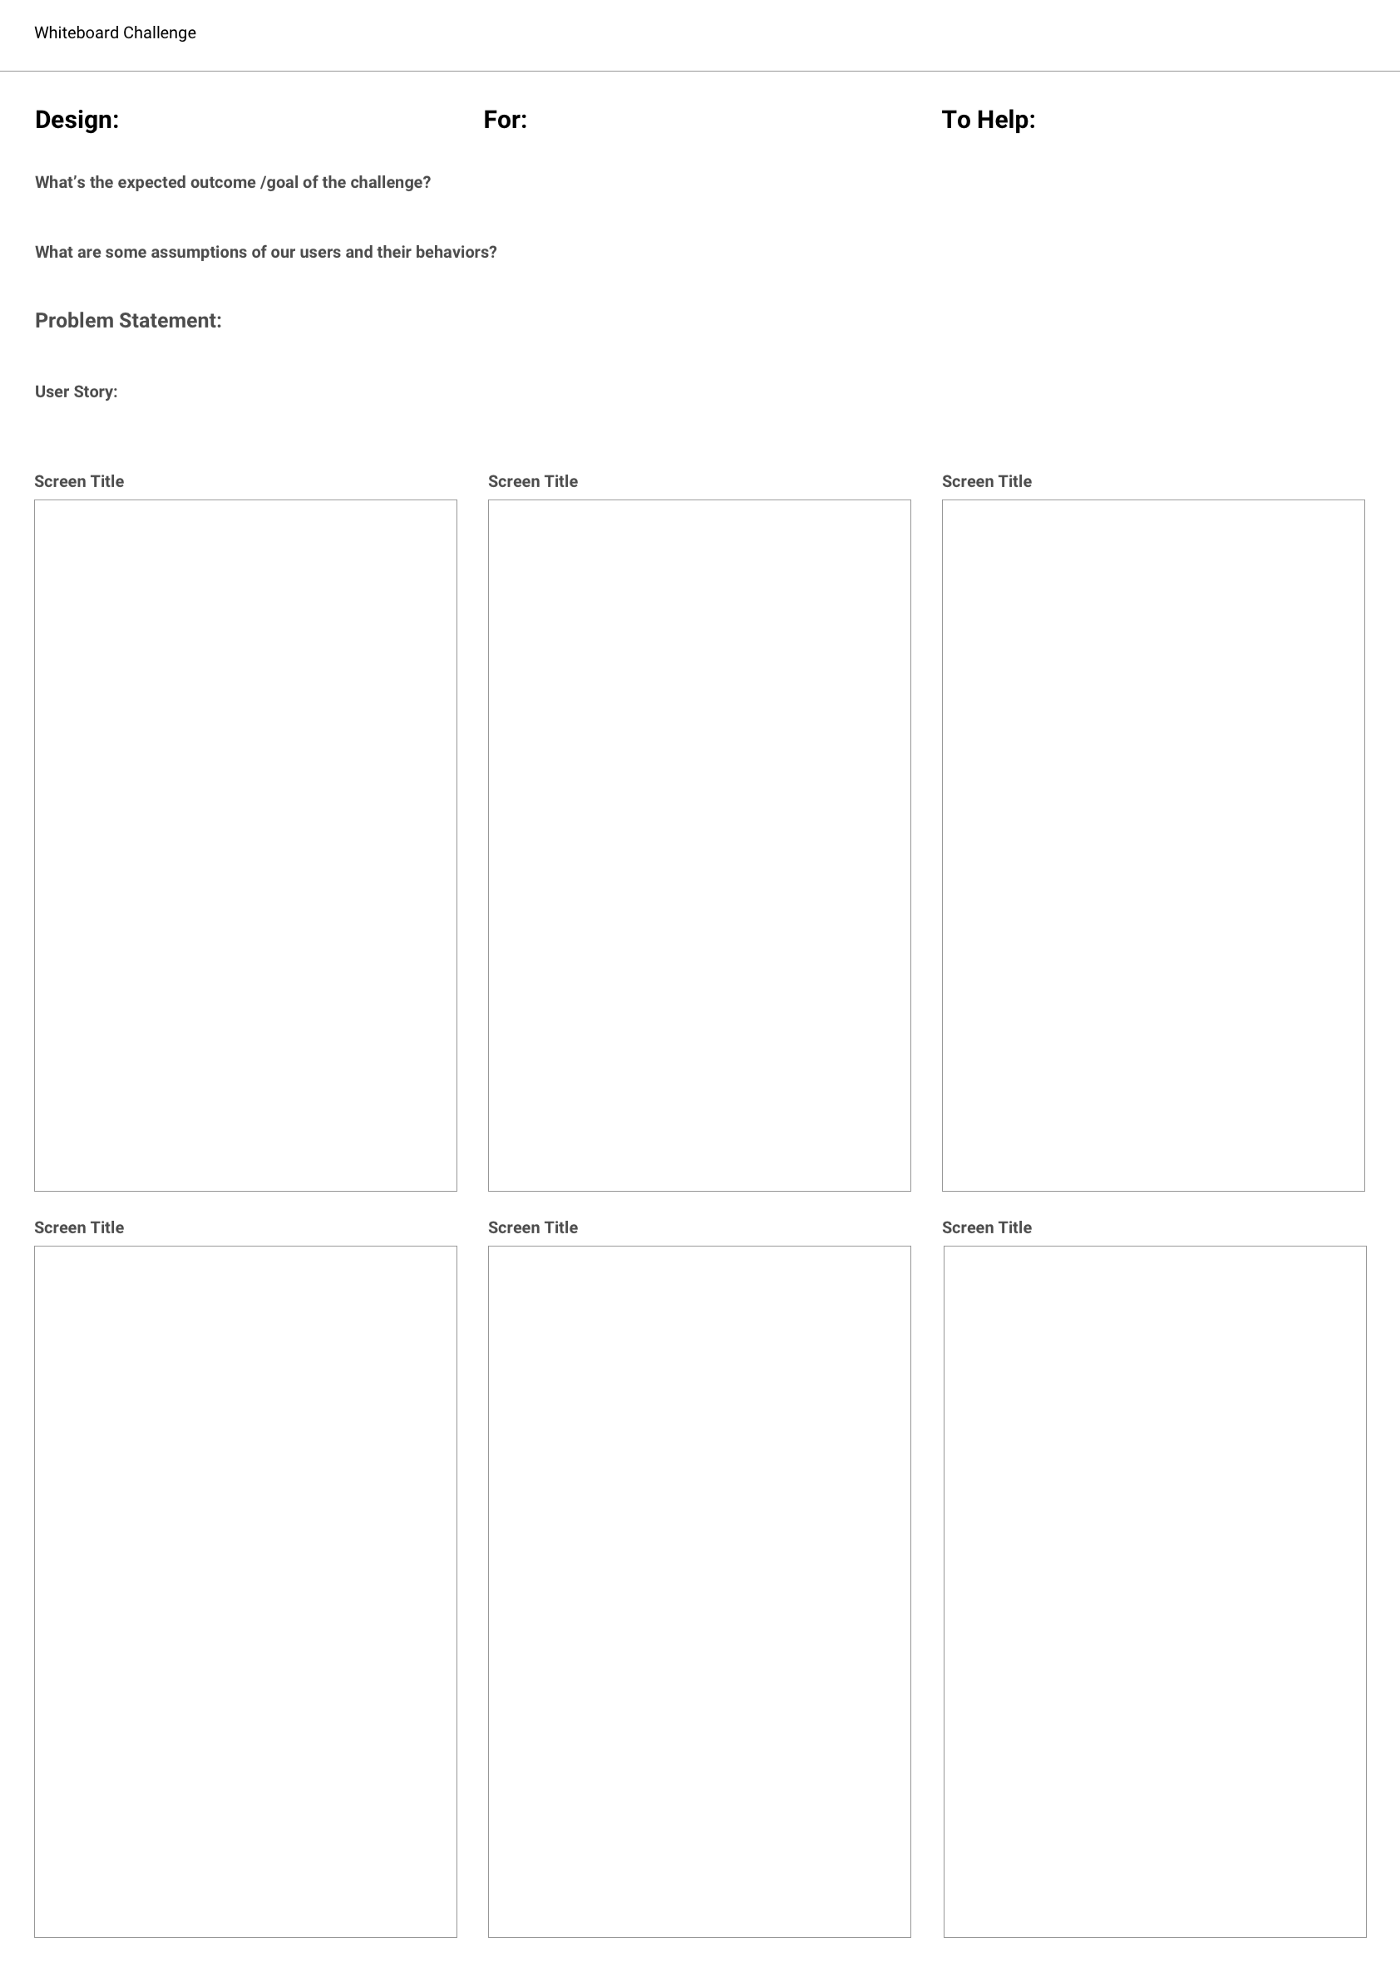 A template for online whiteboard challenges.